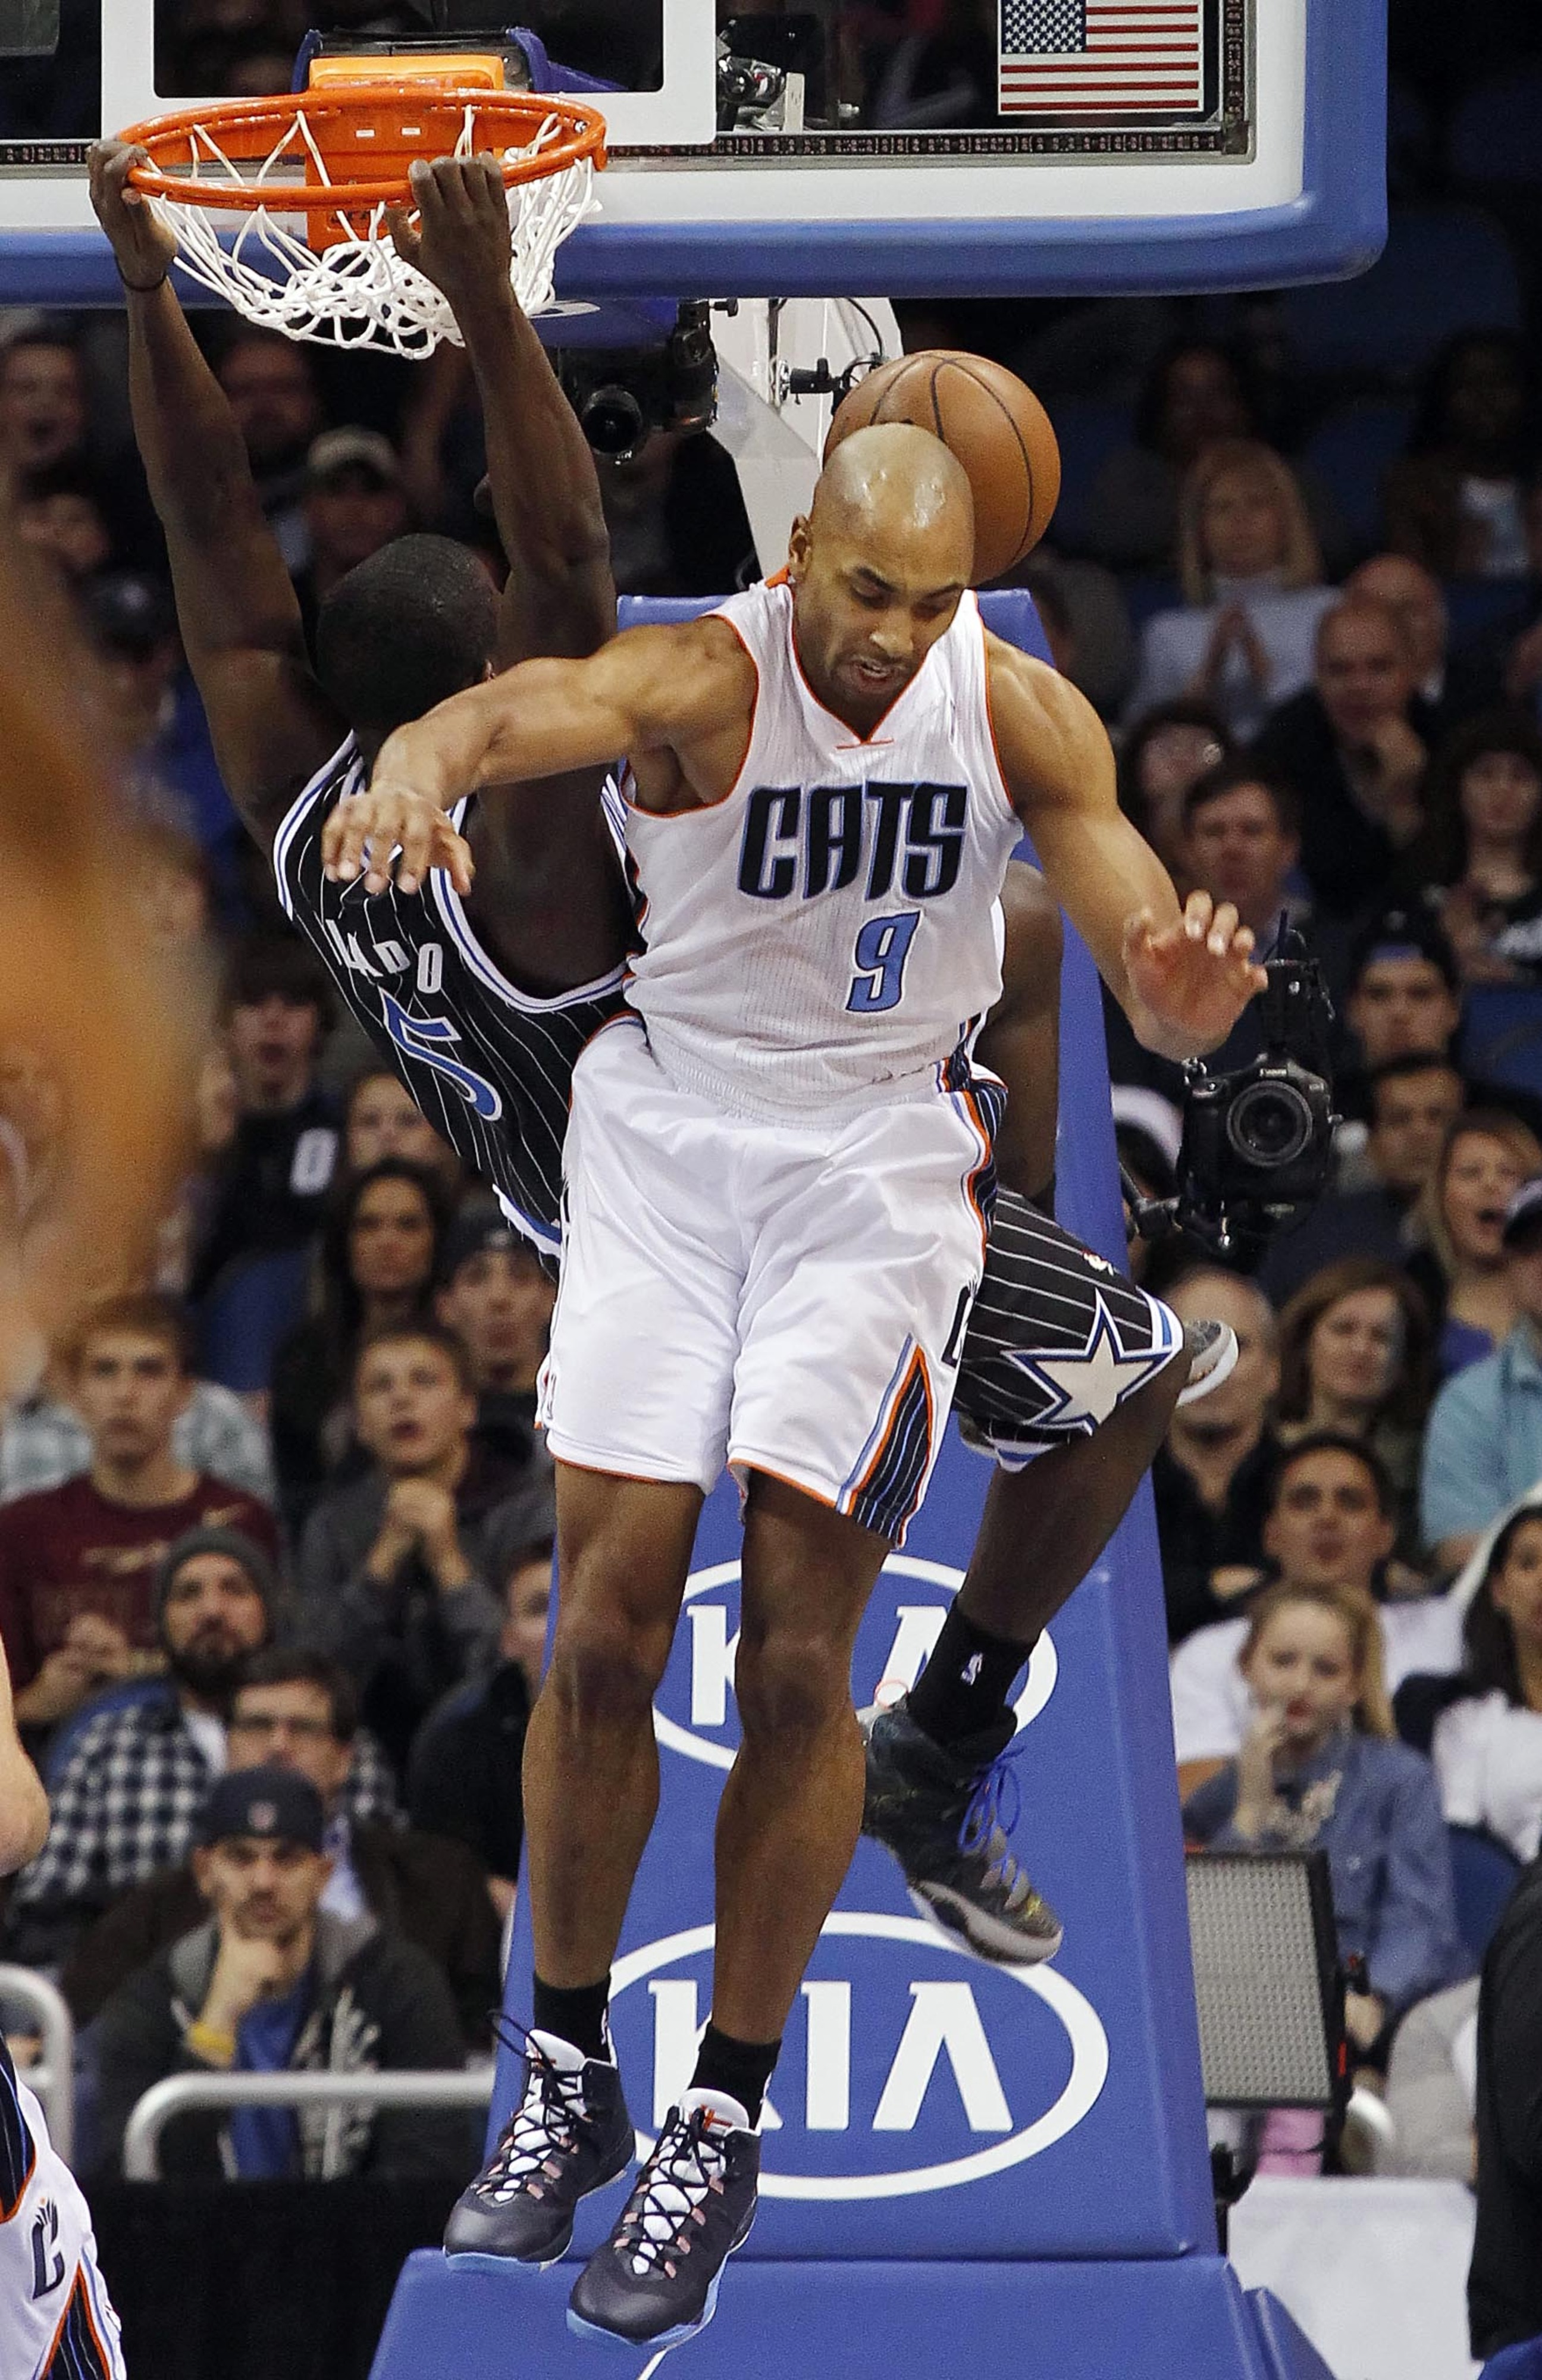 Victor Oladipo and Gerald Henderson